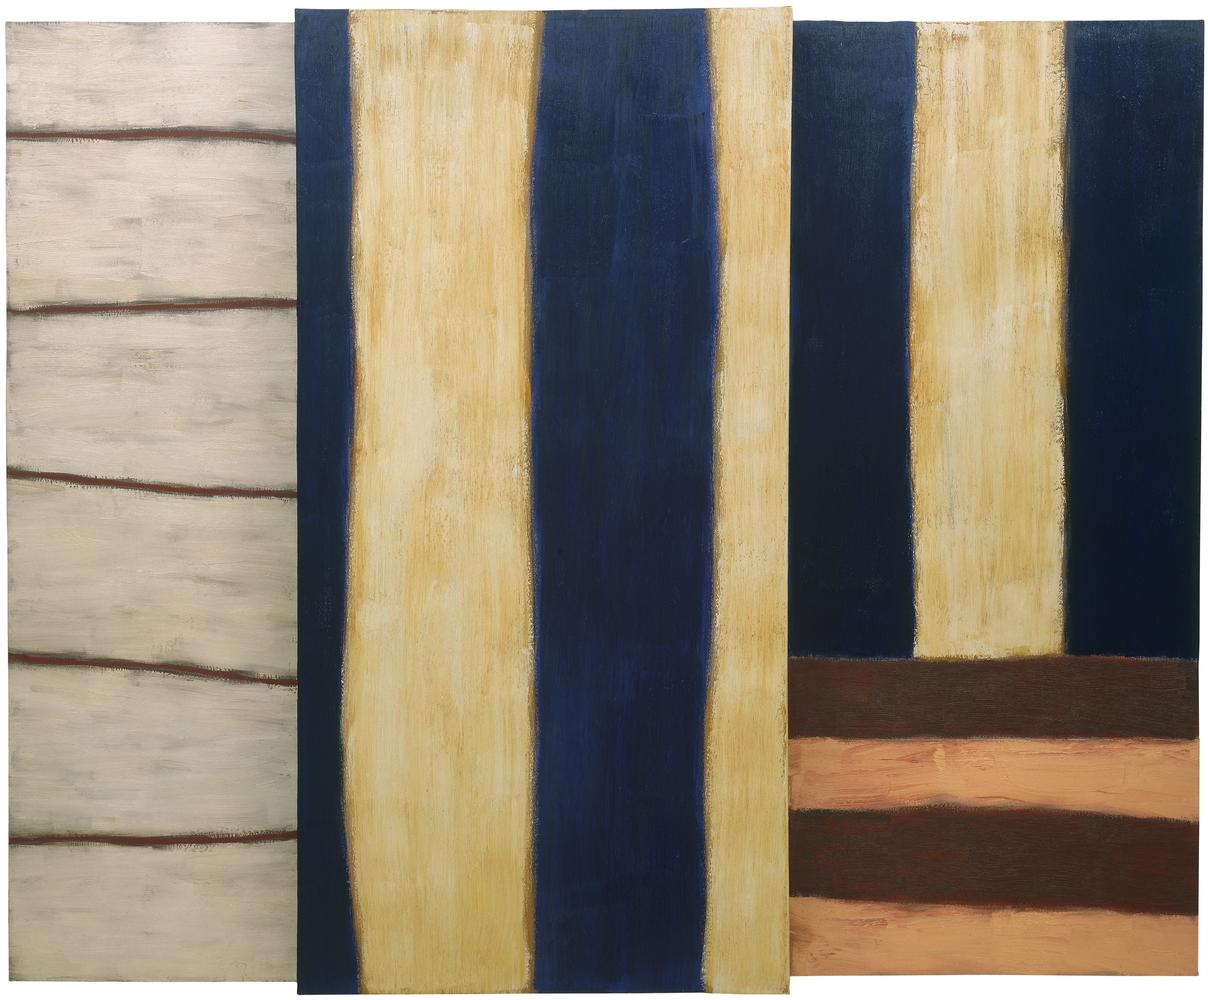 Sean Scully, No Neo, 1984, oil on linen, 96 x 120 inches (243.8 x 304.8 cm) (ourtesy Mnuchin Gallery, New York, © Sean Scully)